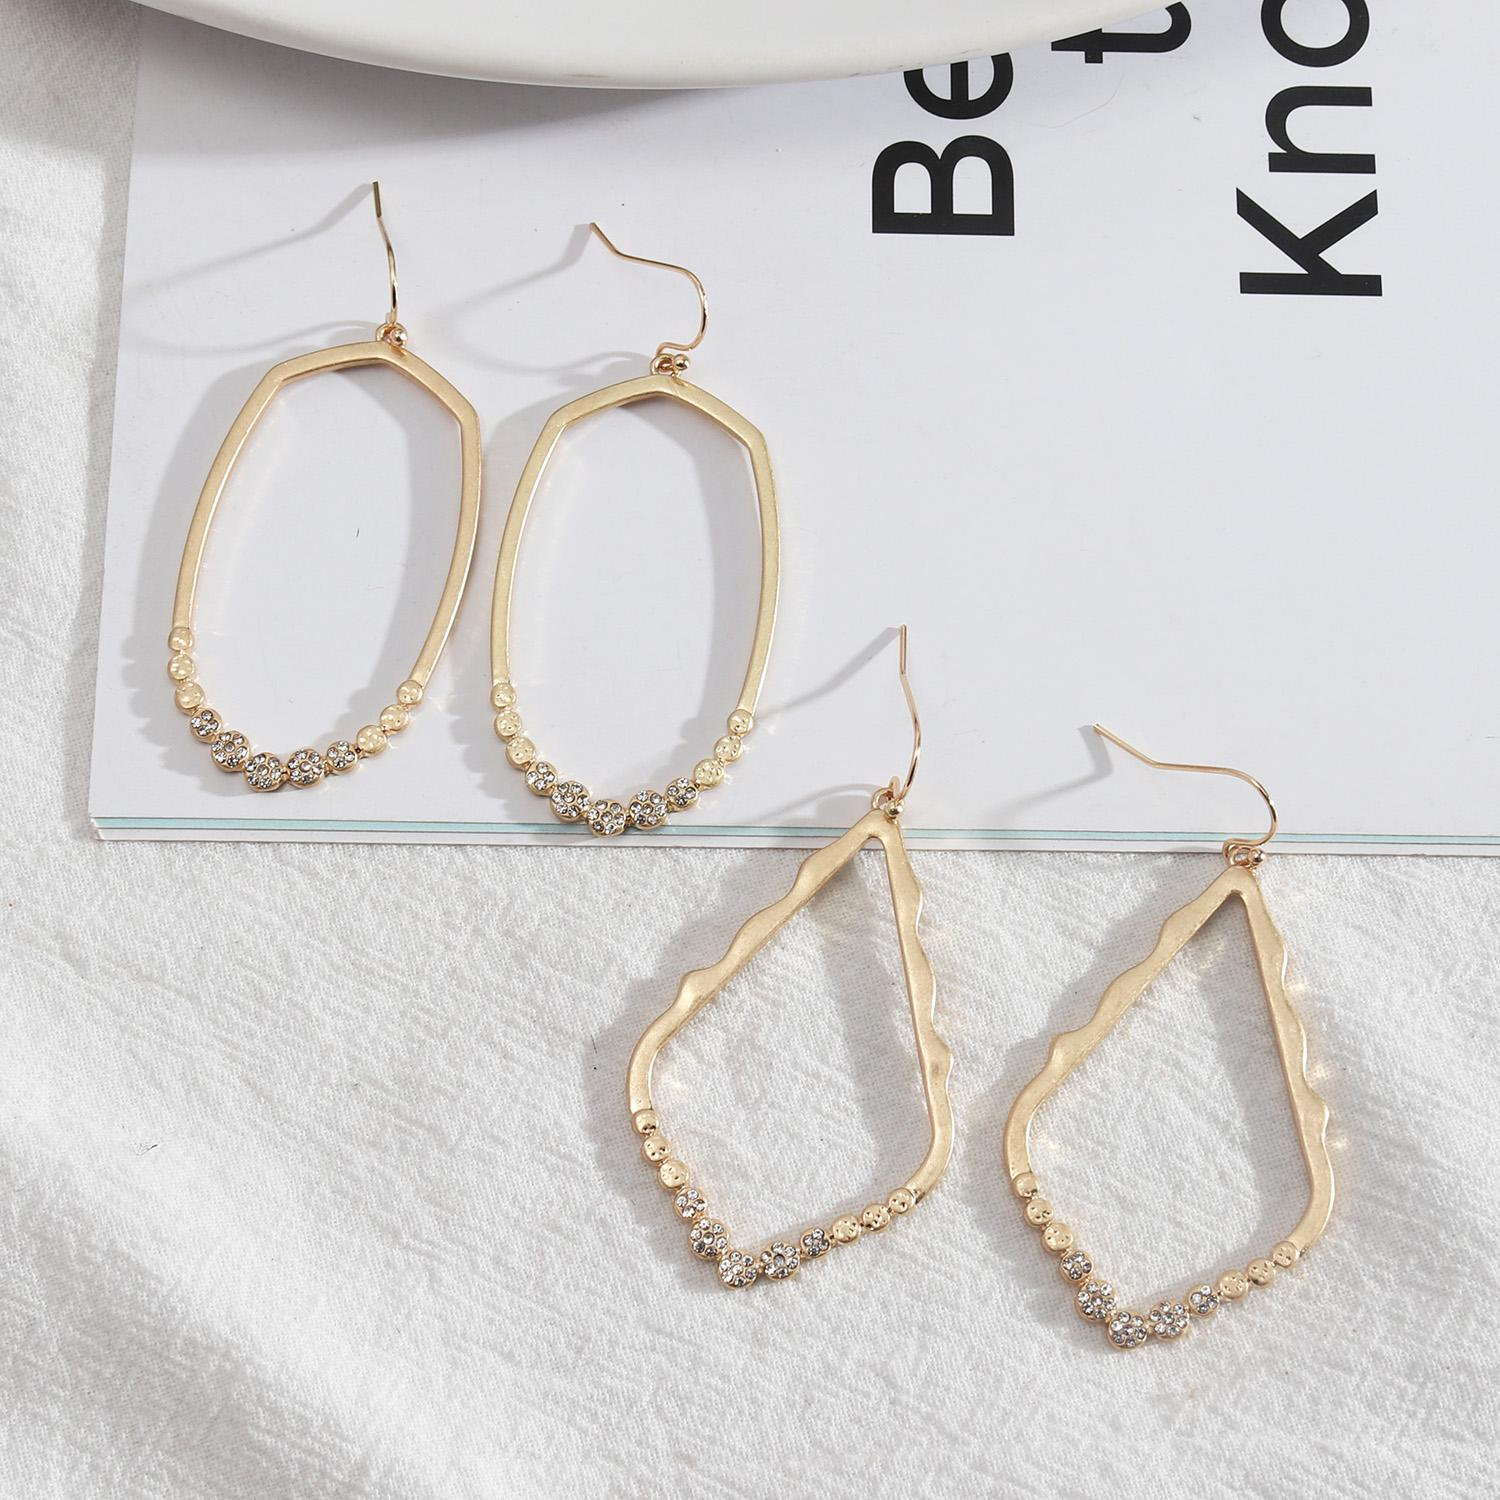 Teardrop Geometric Stud Earrings Rhinestones Crystal Designs Alloy Fashion Wholesale Party Travelling Jewelry Accessories Mujer For Women Girl